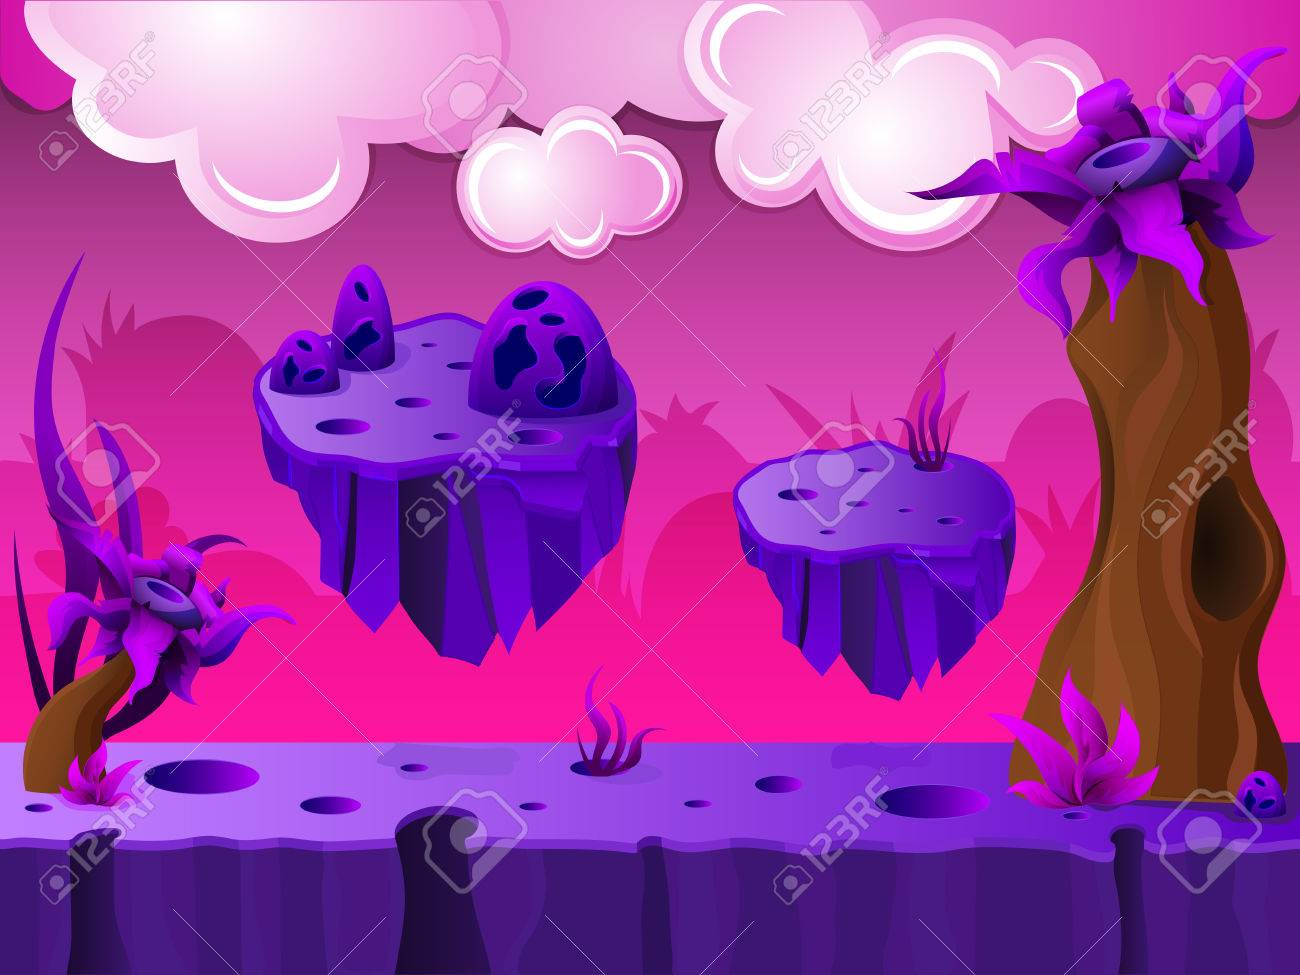 Purple Crater Land Game Design With Platforms And Clouds In Sky - Game design platform